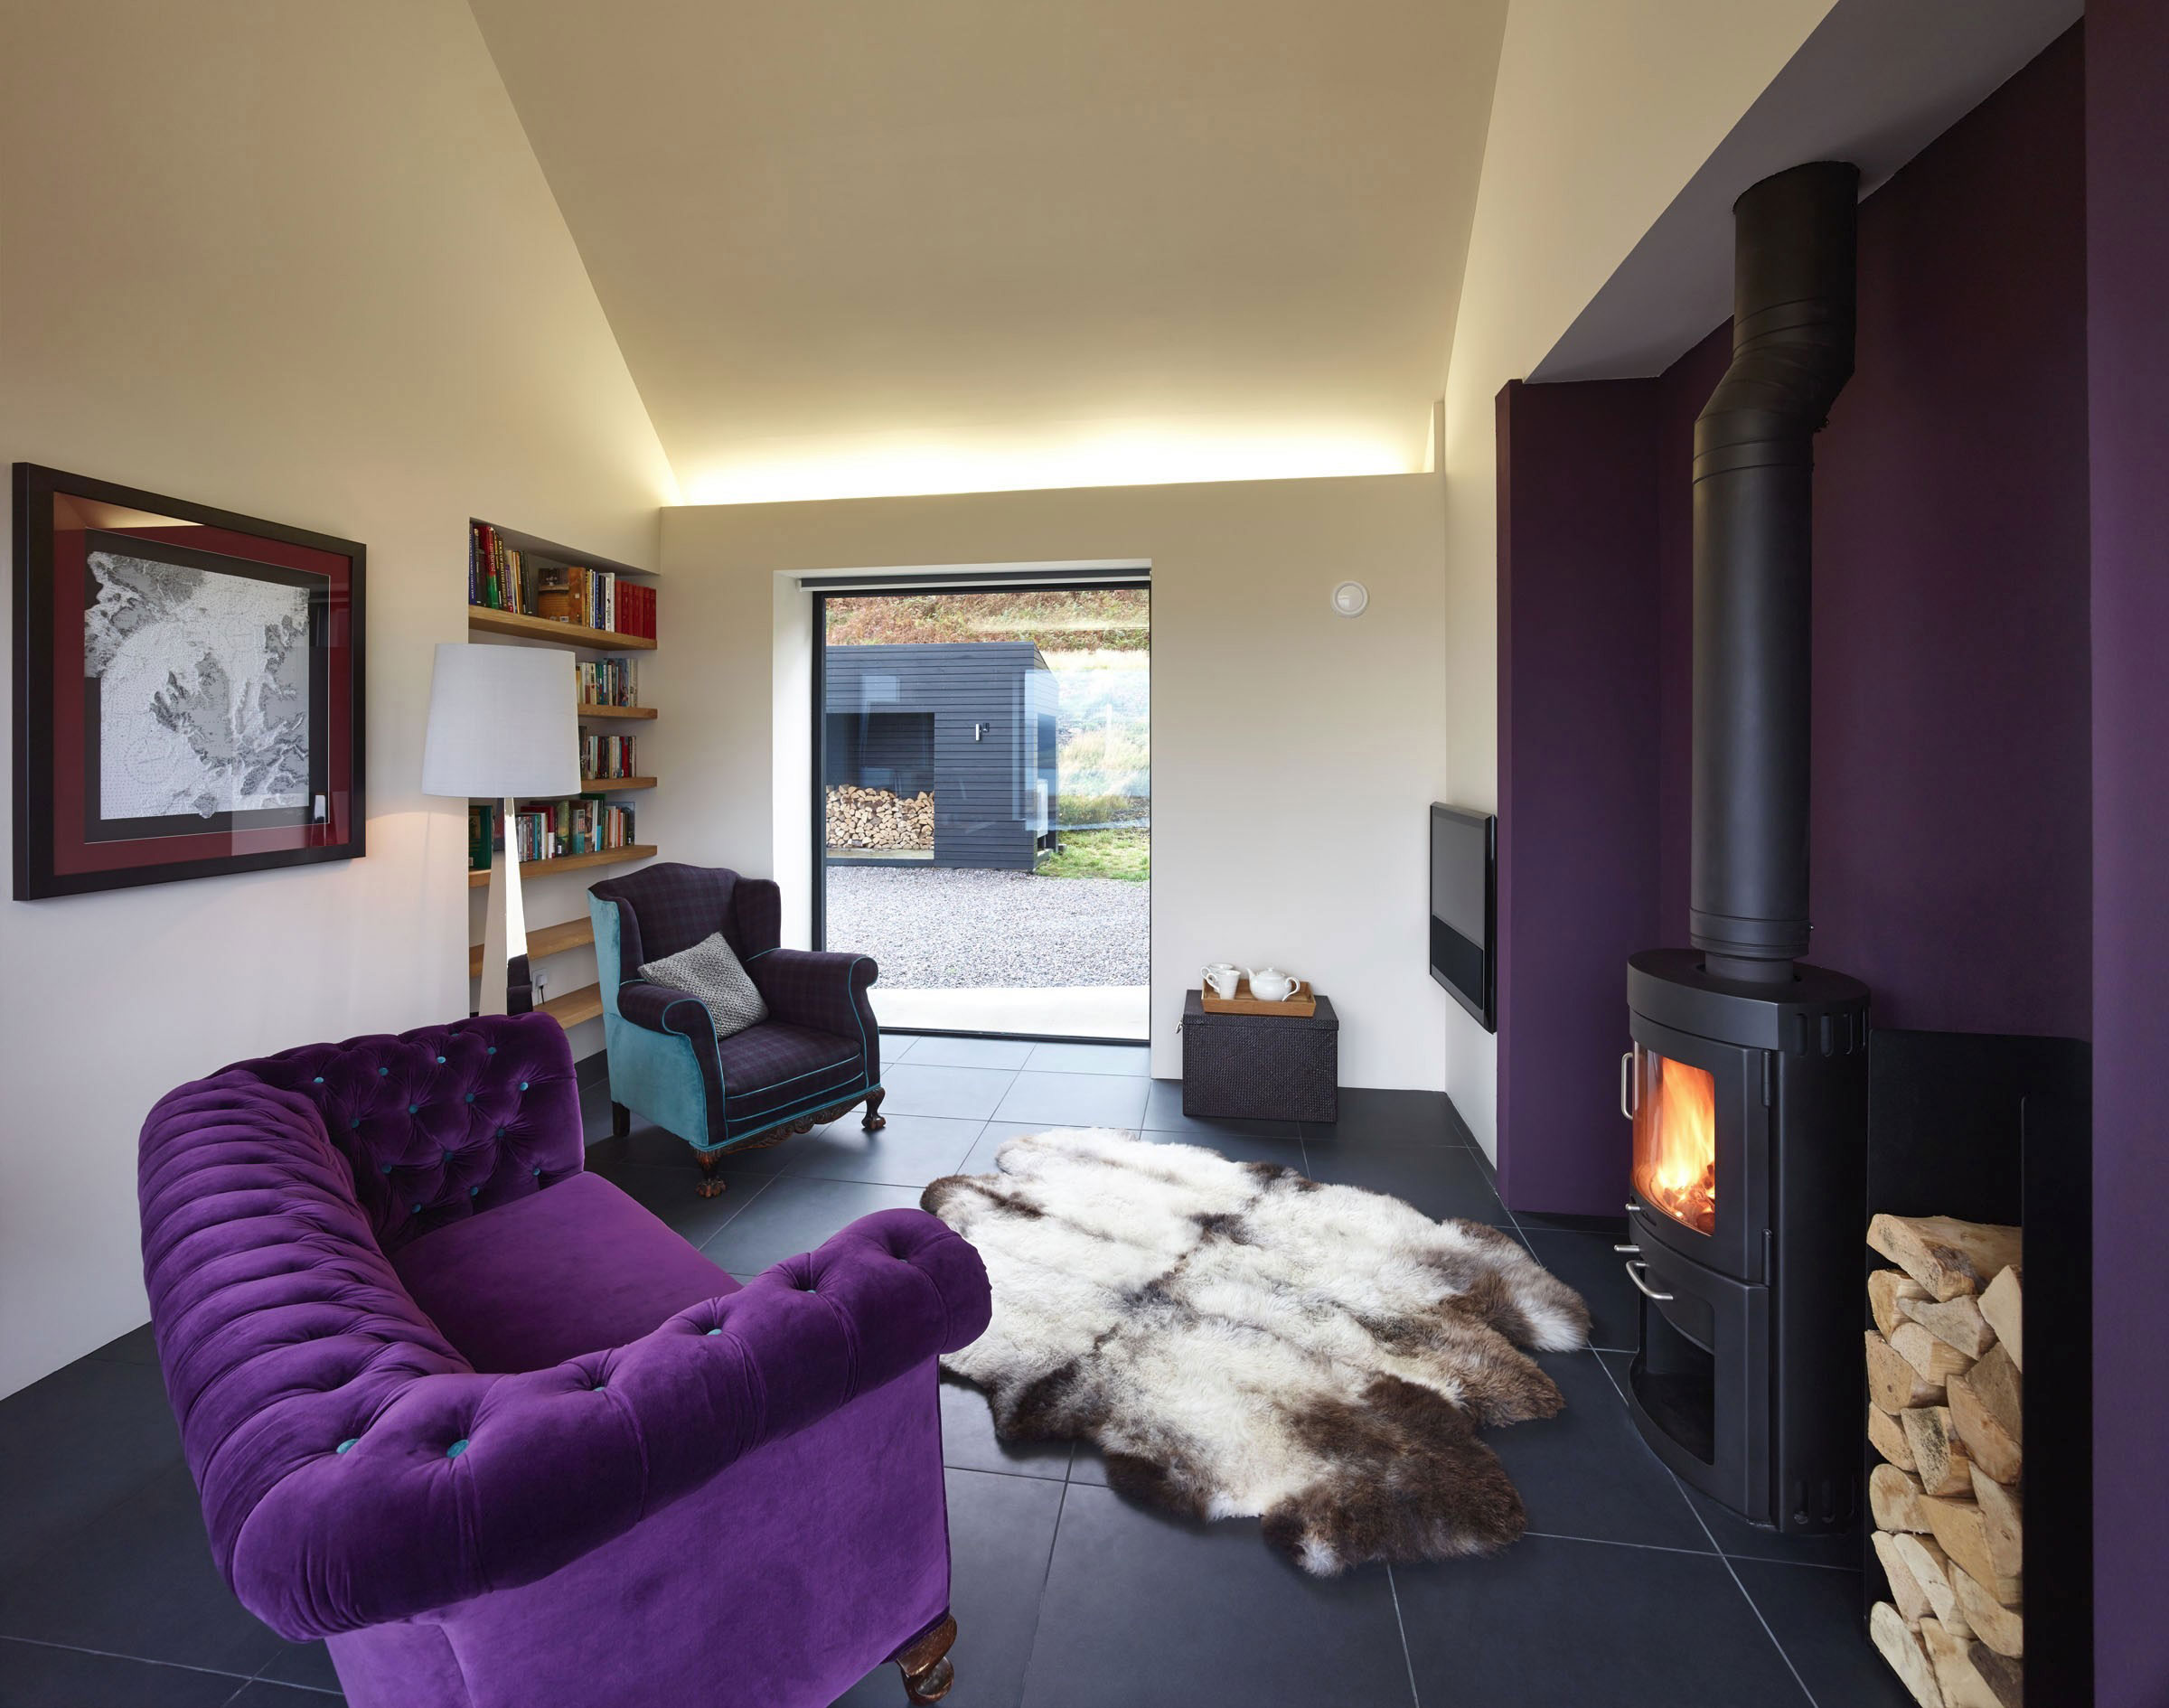 House-in-Colbost-small-lounge-area